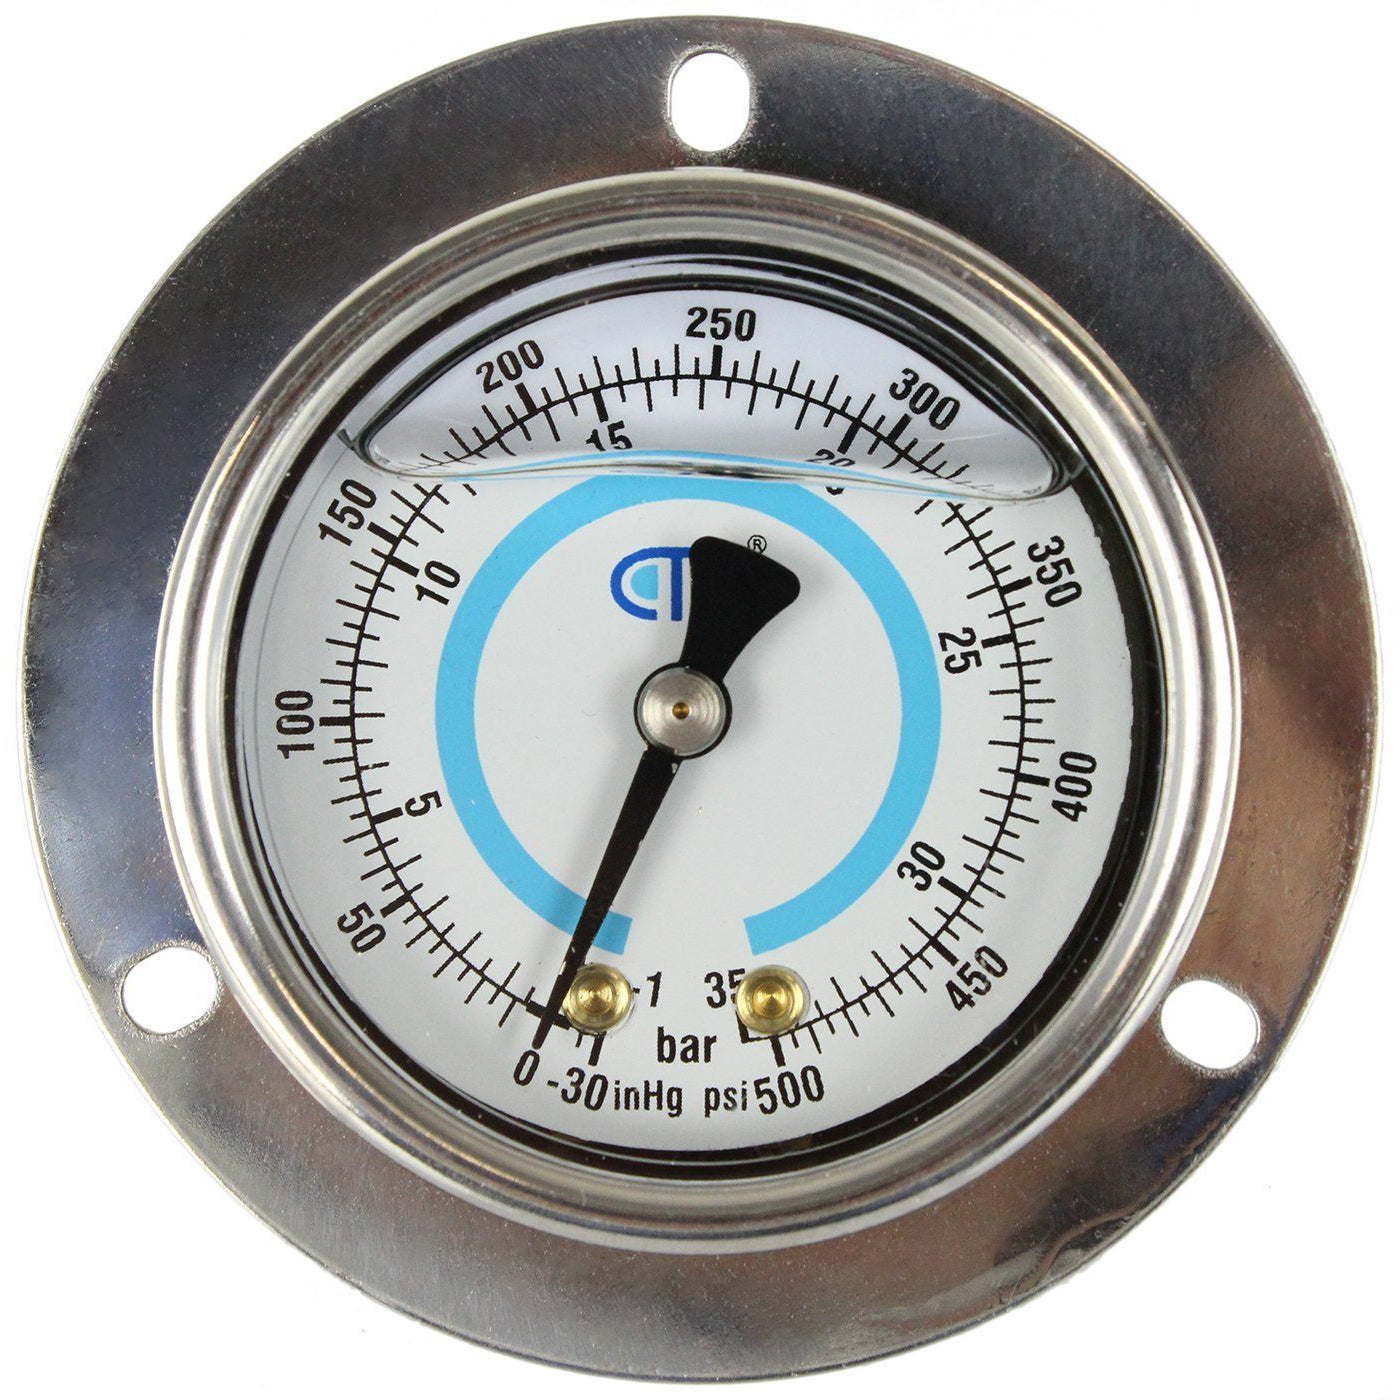 CMEP-OL Low-Pressure Gauge Shop All Categories CMEP